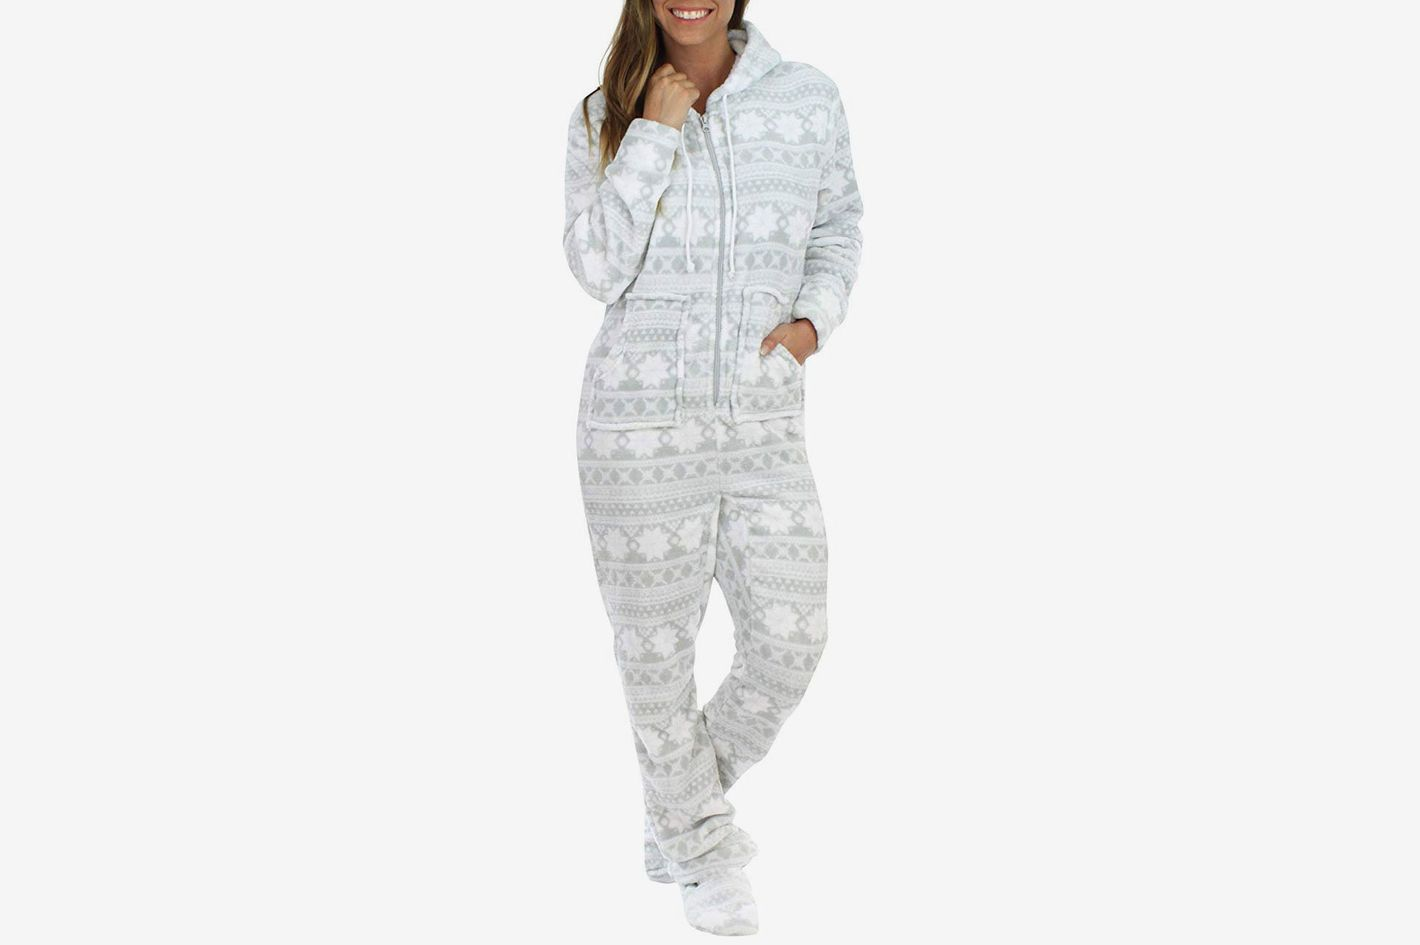 4733ef3d292e SleepytimePjs Women s Sleepwear Fleece Hooded Footed Onesie Pajamas